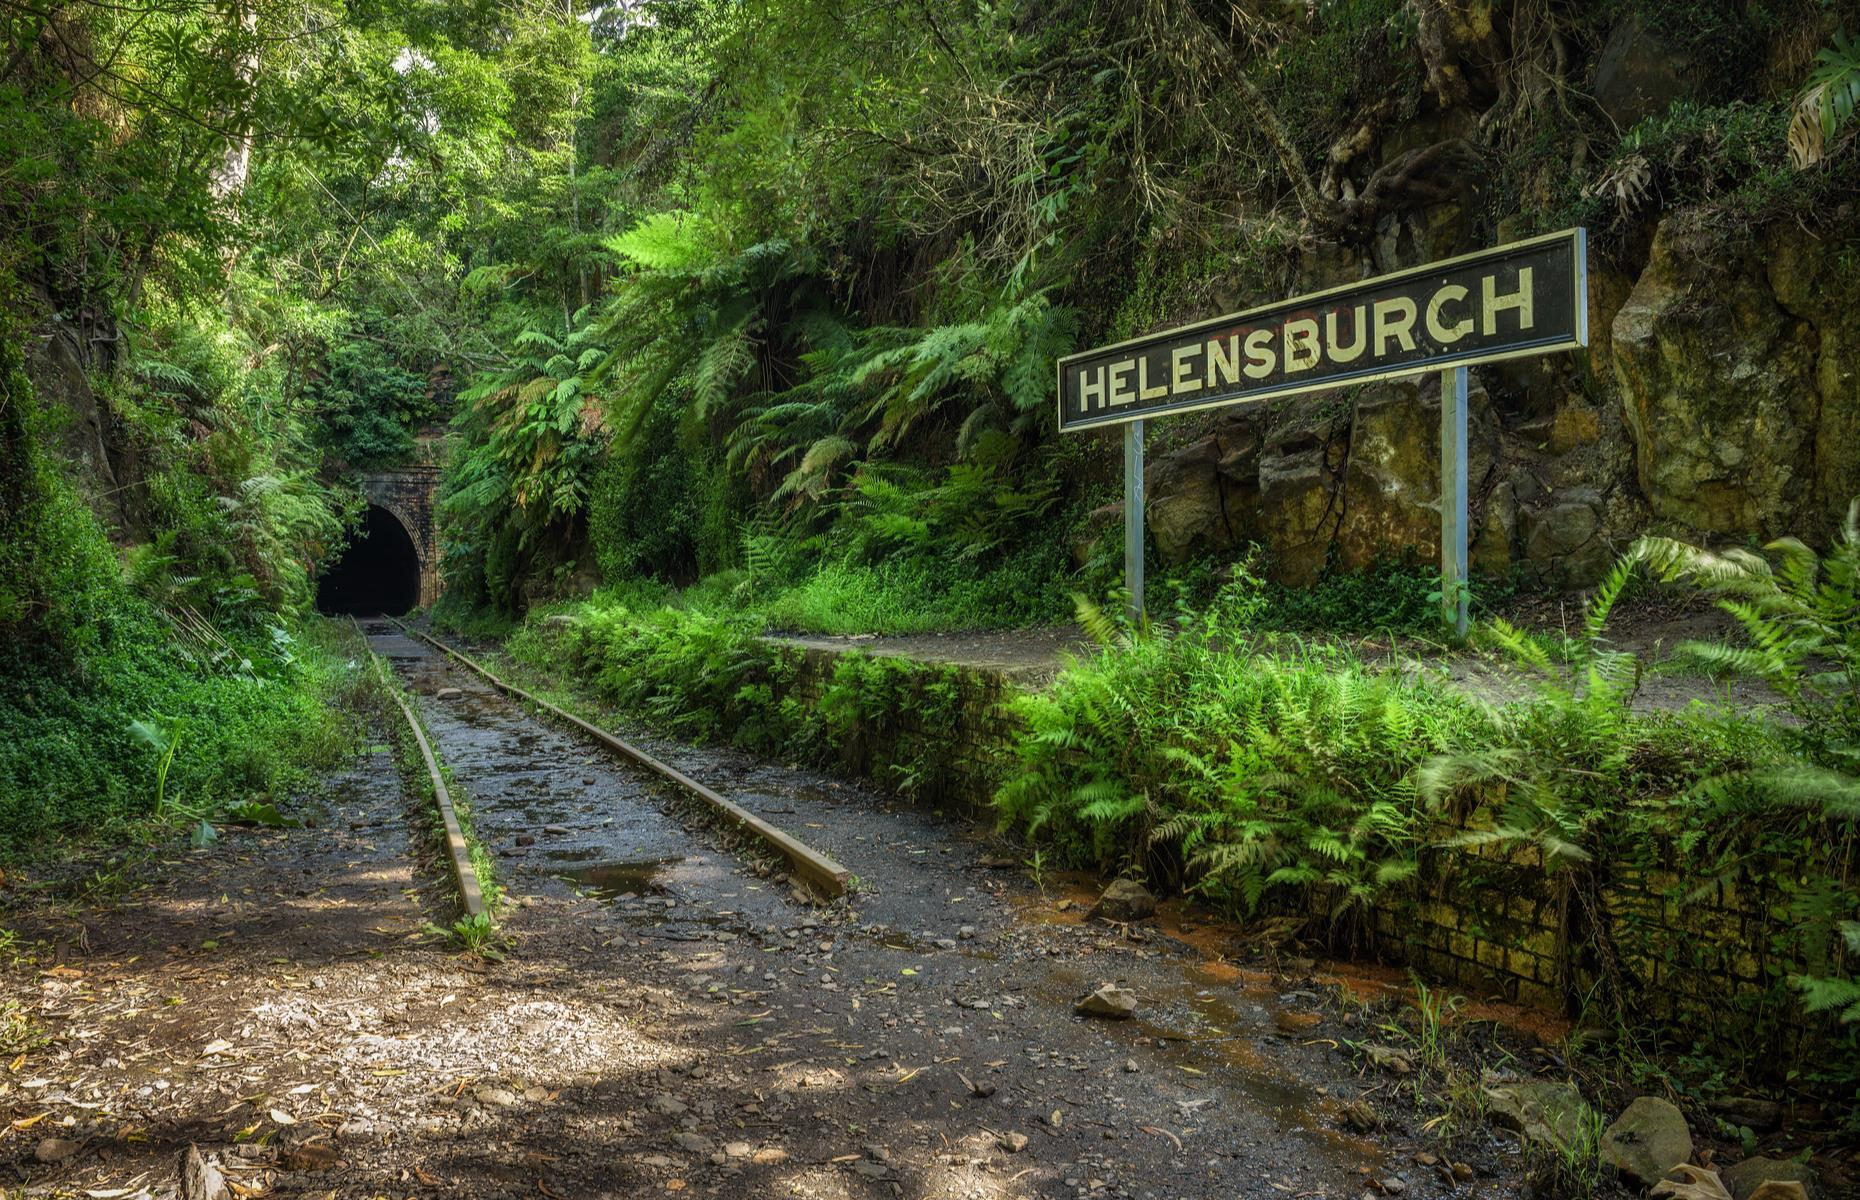 Slide 10 of 33: The Sutherland to Wollongong train line was built in New South Wales between 1884 and 1886 to service the coalfields and farms. There are seven abandoned tunnels between Waterfall and Otford, together known as the Helensburgh Tunnels, as well as the desolate Helensburgh station. The area is now popular with walkers, rail enthusiasts and ghost hunters, and there have even been reported sightings of a ghostly figure in the dark tunnels. It's said to be Robert Hails, a miner hit by a train in 1895.